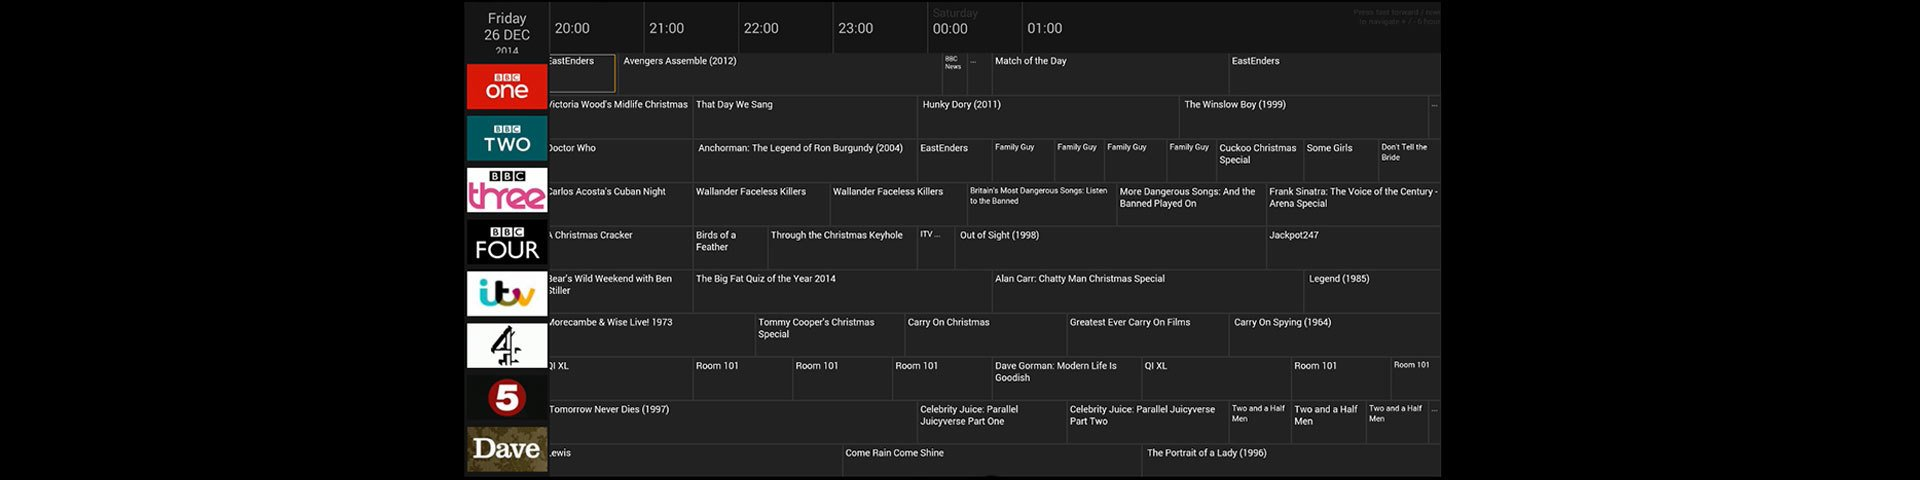 Channel listing